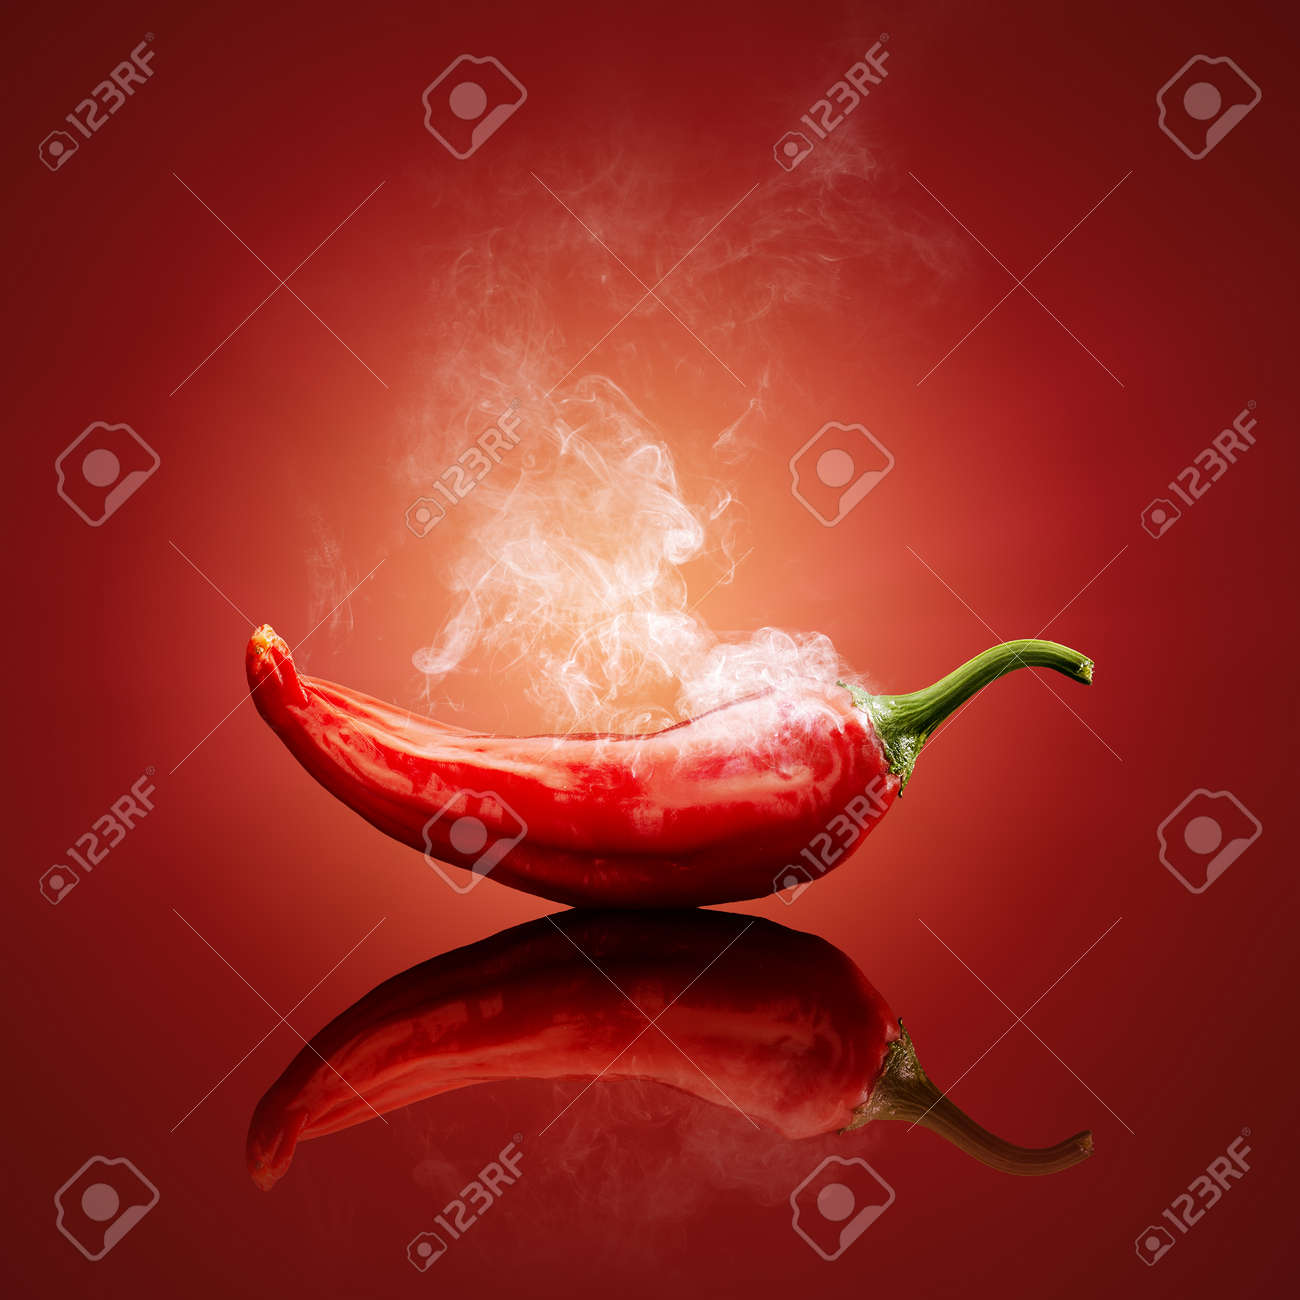 Hot chili red smoking or steaming with reflection - 39988067